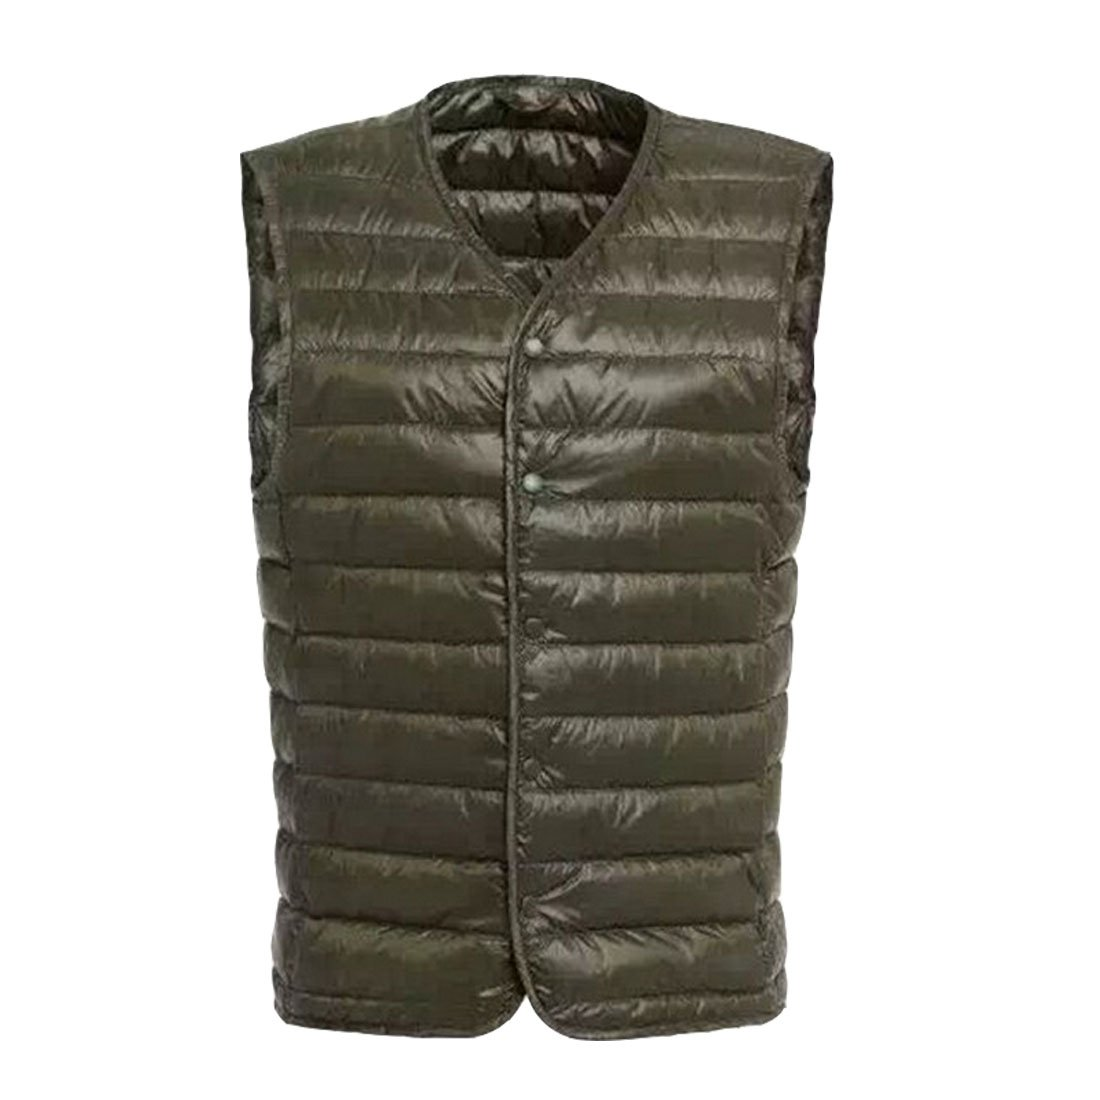 HZCX FASHION Men's V-Neck Button Up Quilted Packable Ultra Lightweight Down Vest